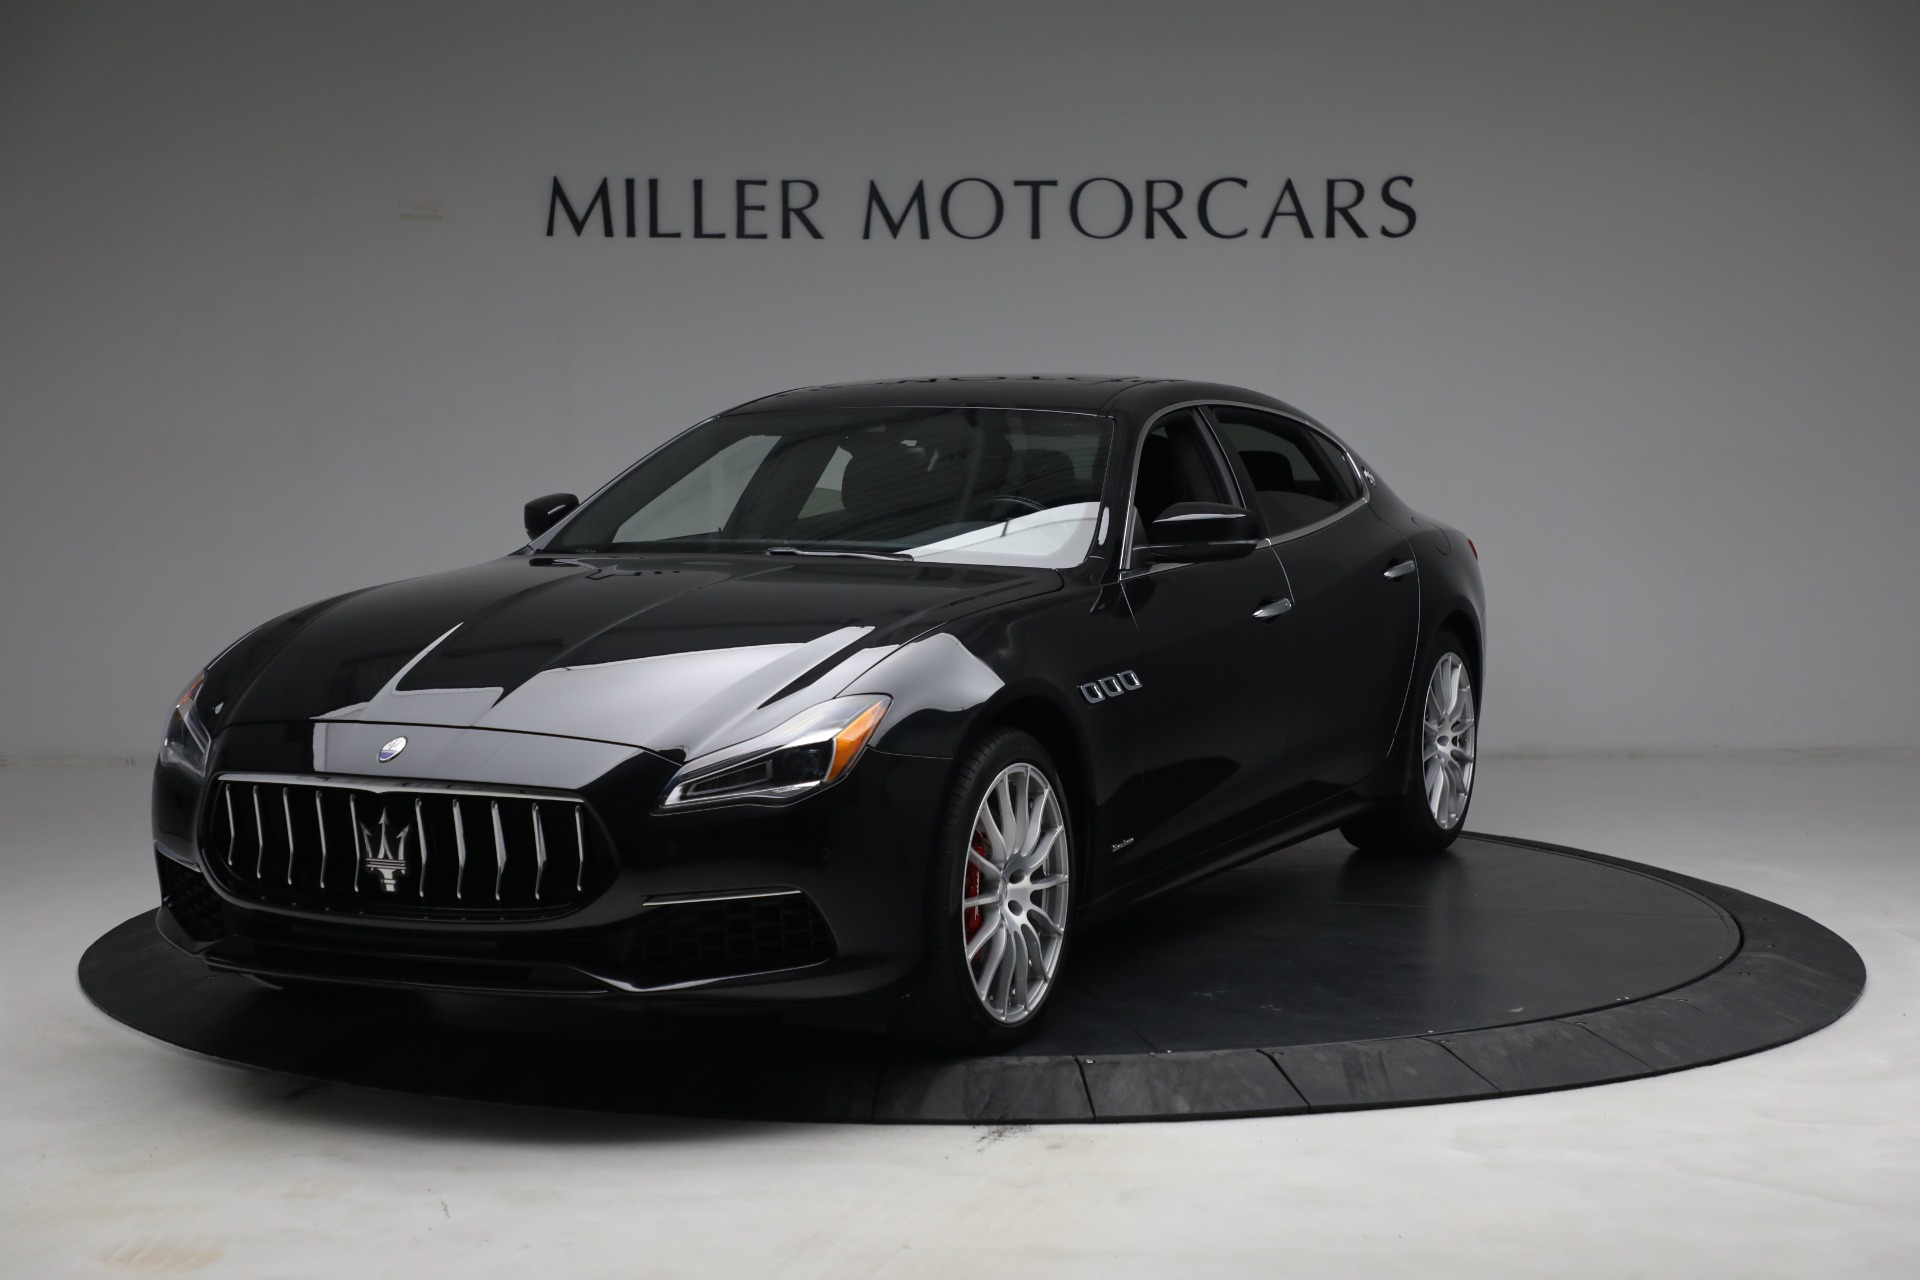 New 2019 Maserati Quattroporte S Q4 GranLusso For Sale In Greenwich, CT 2619_main